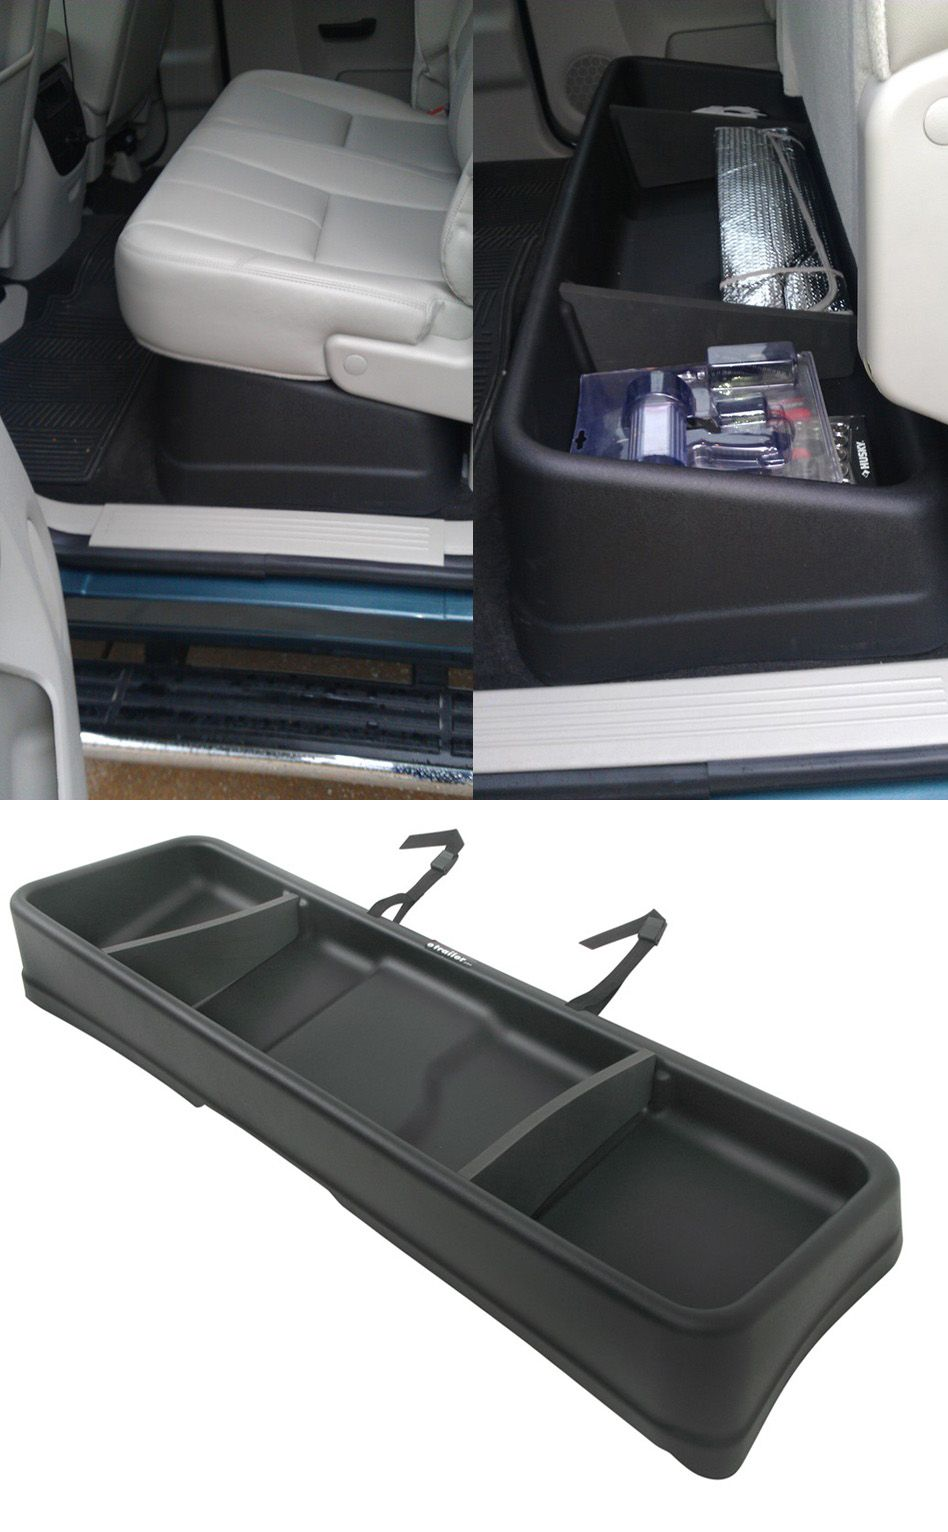 small resolution of large capacity cargo box compatible with the gmc sierra and fits perfectly beneath the rear seats of the truck minimizes cargo shifting store tools